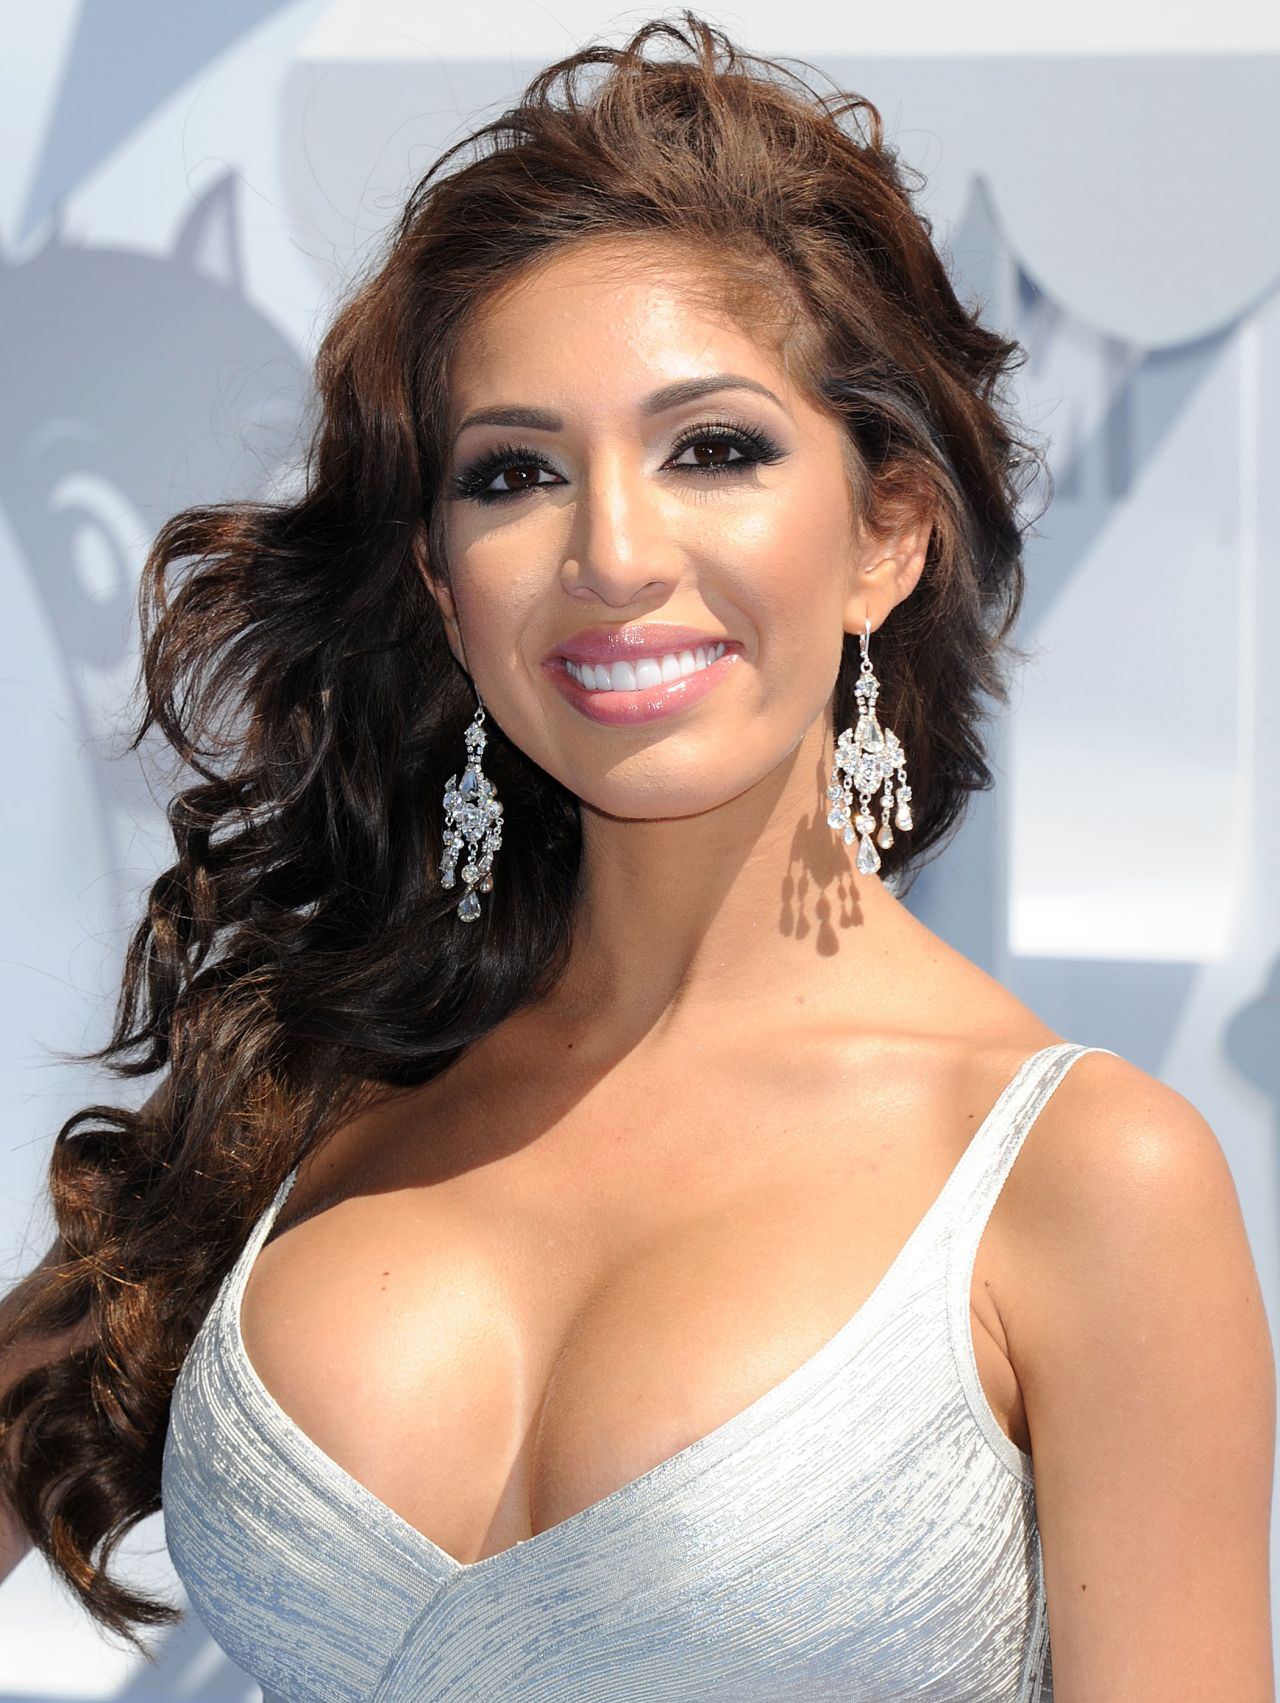 Farrah abraham back door